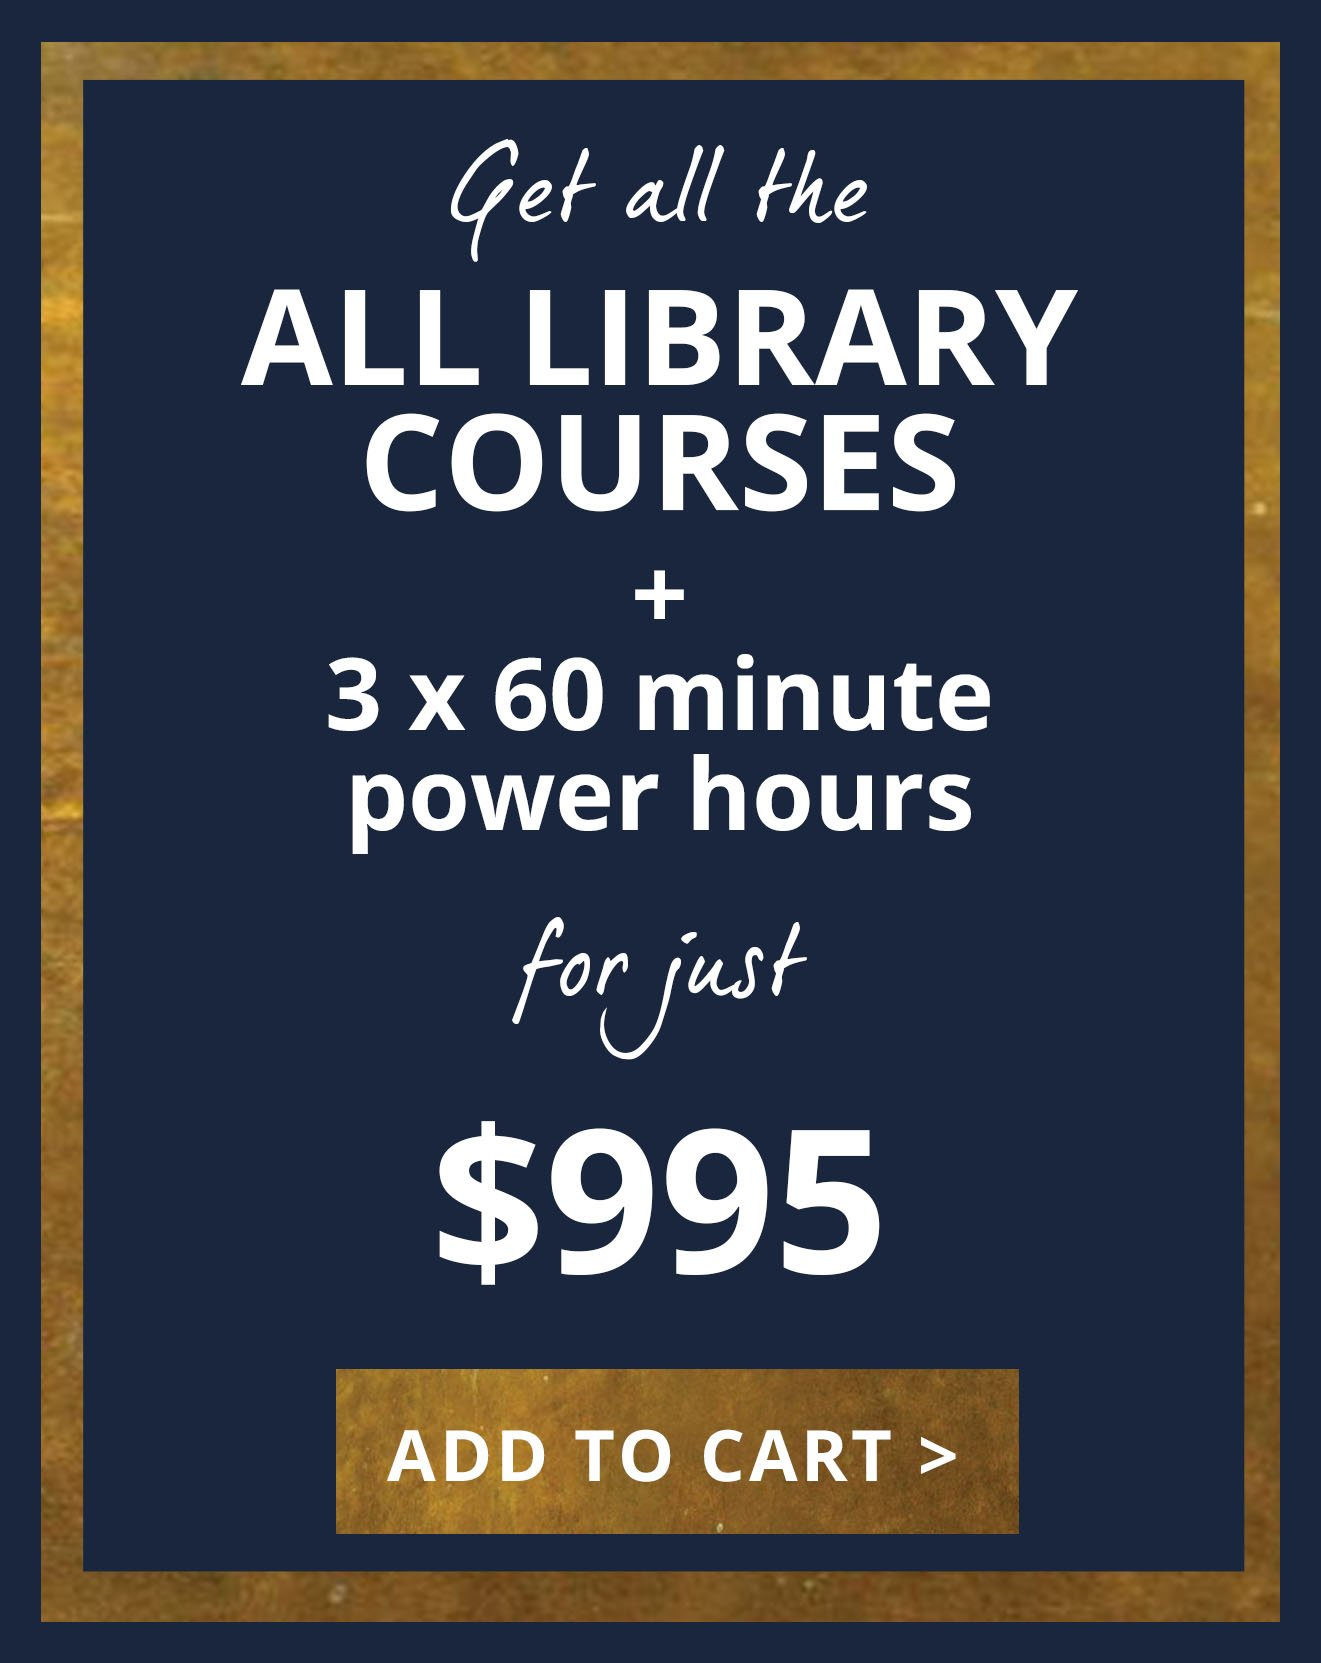 All Library Courses bundle with power hours